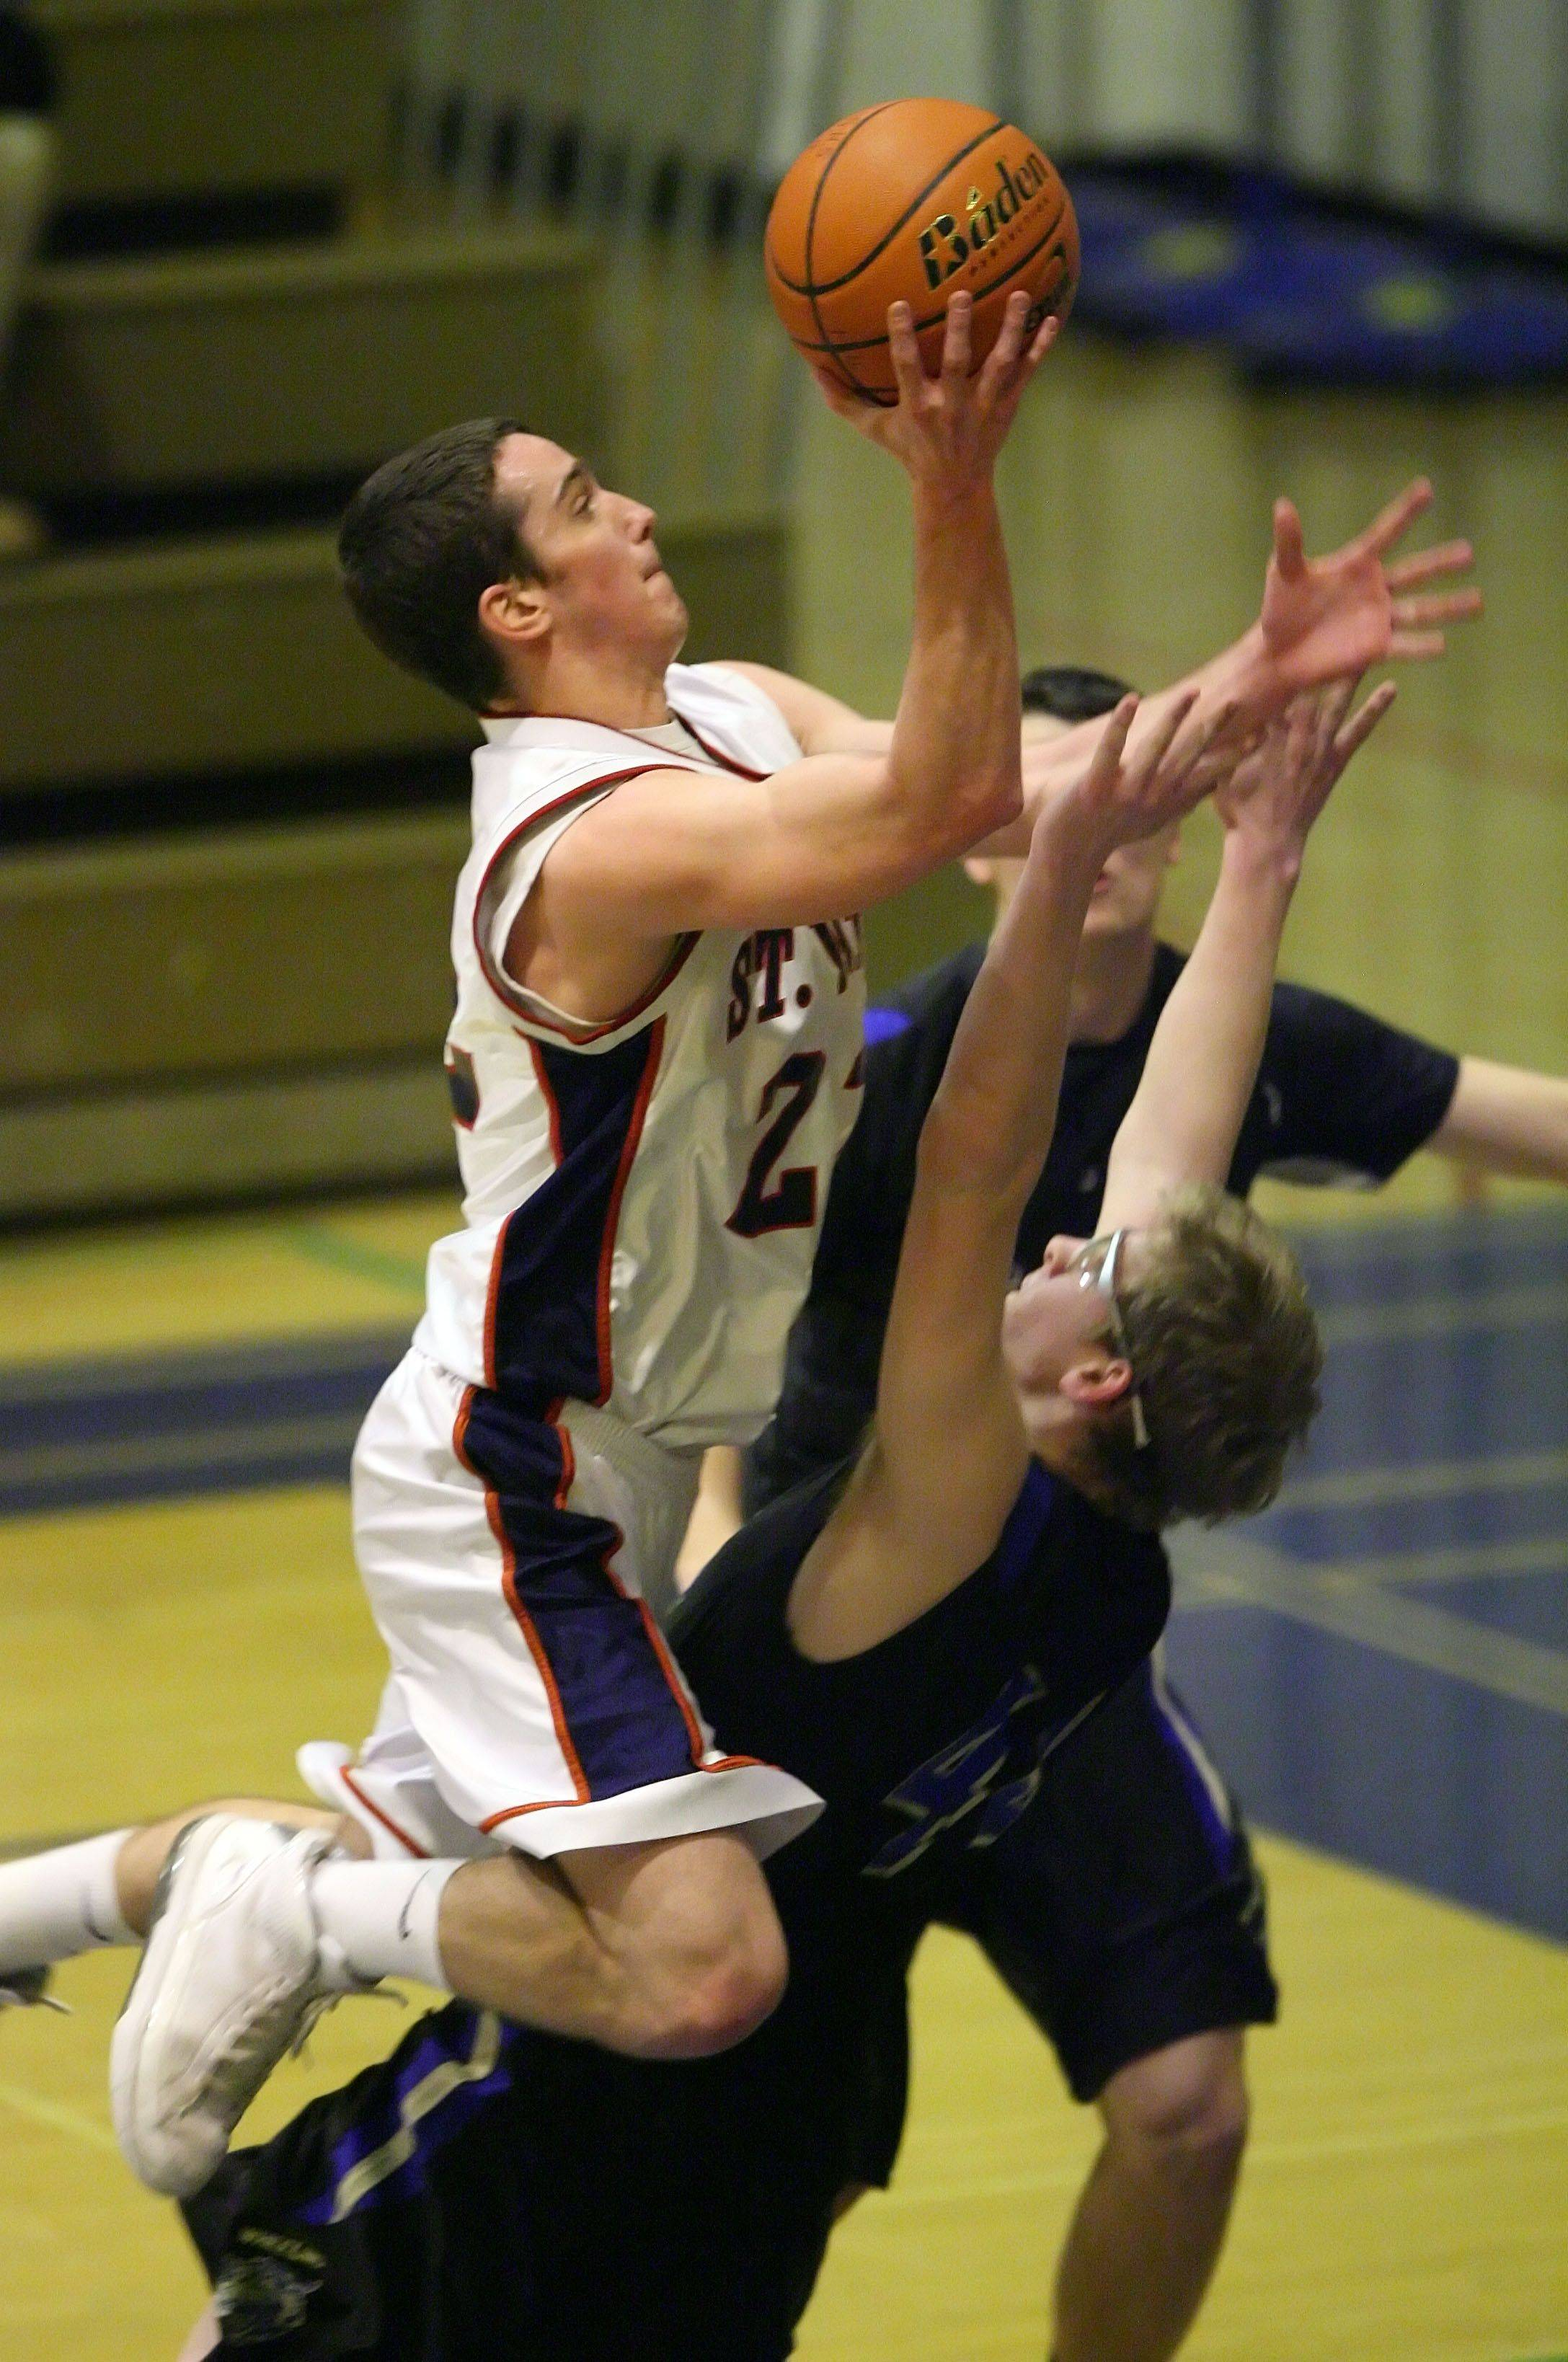 St. Viator's Quinn Murray drives on Wheeling's Matt Hart during their regional game Monday night at Wheeling High School.